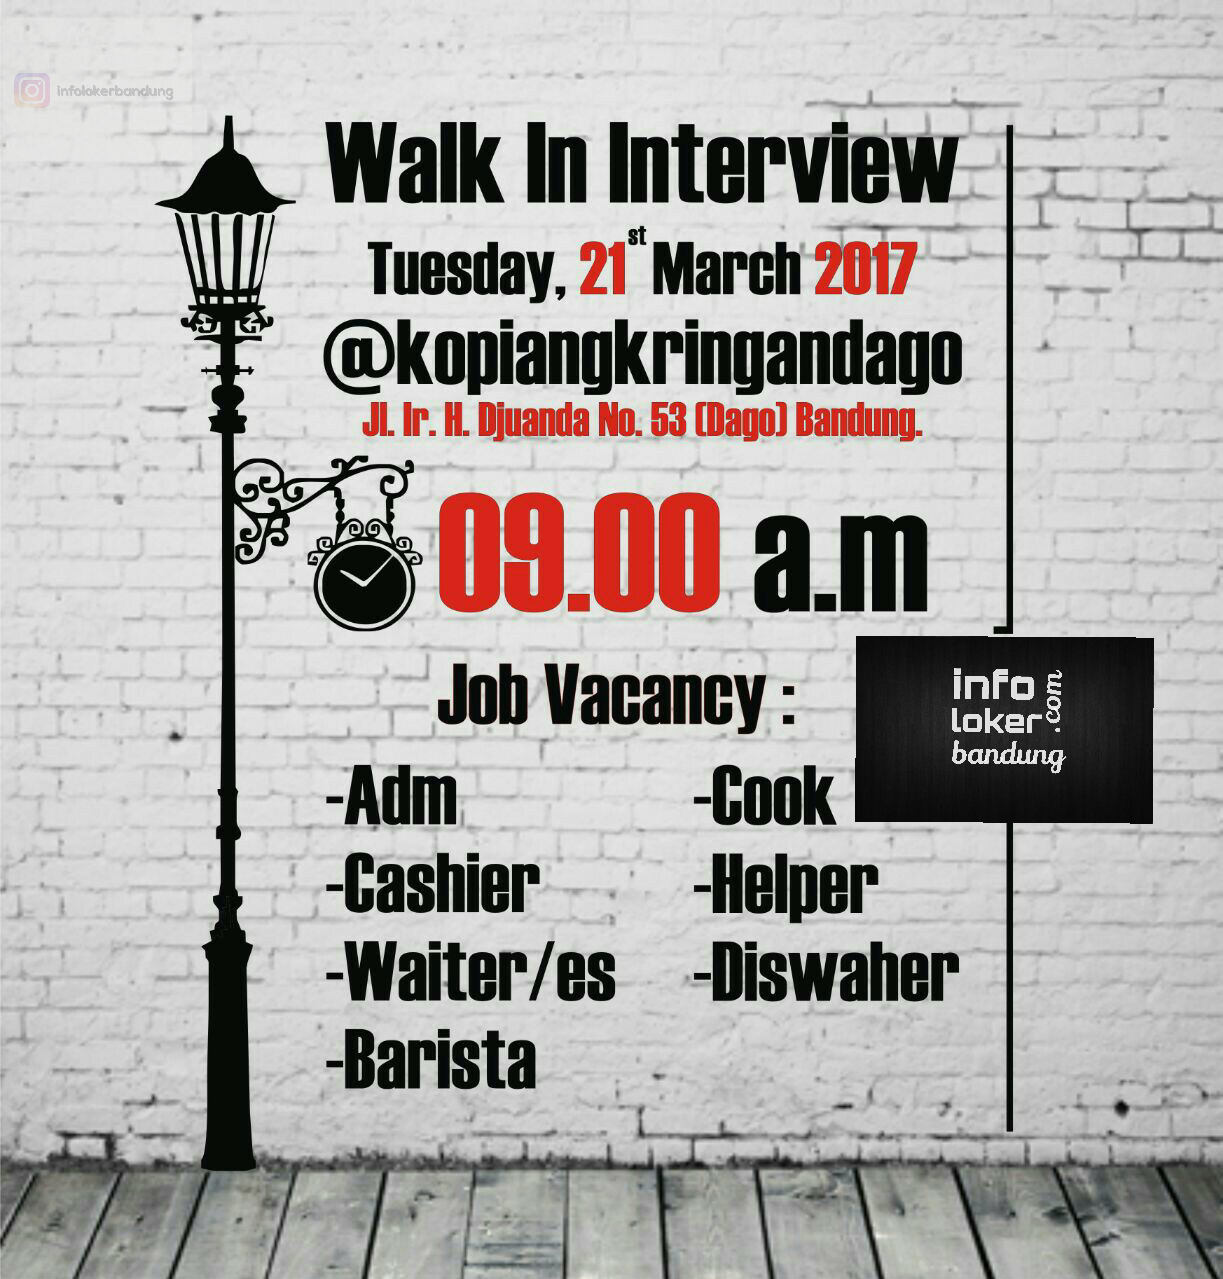 Walk In Interview Kopi Angkringan Dago 21 Maret 2017